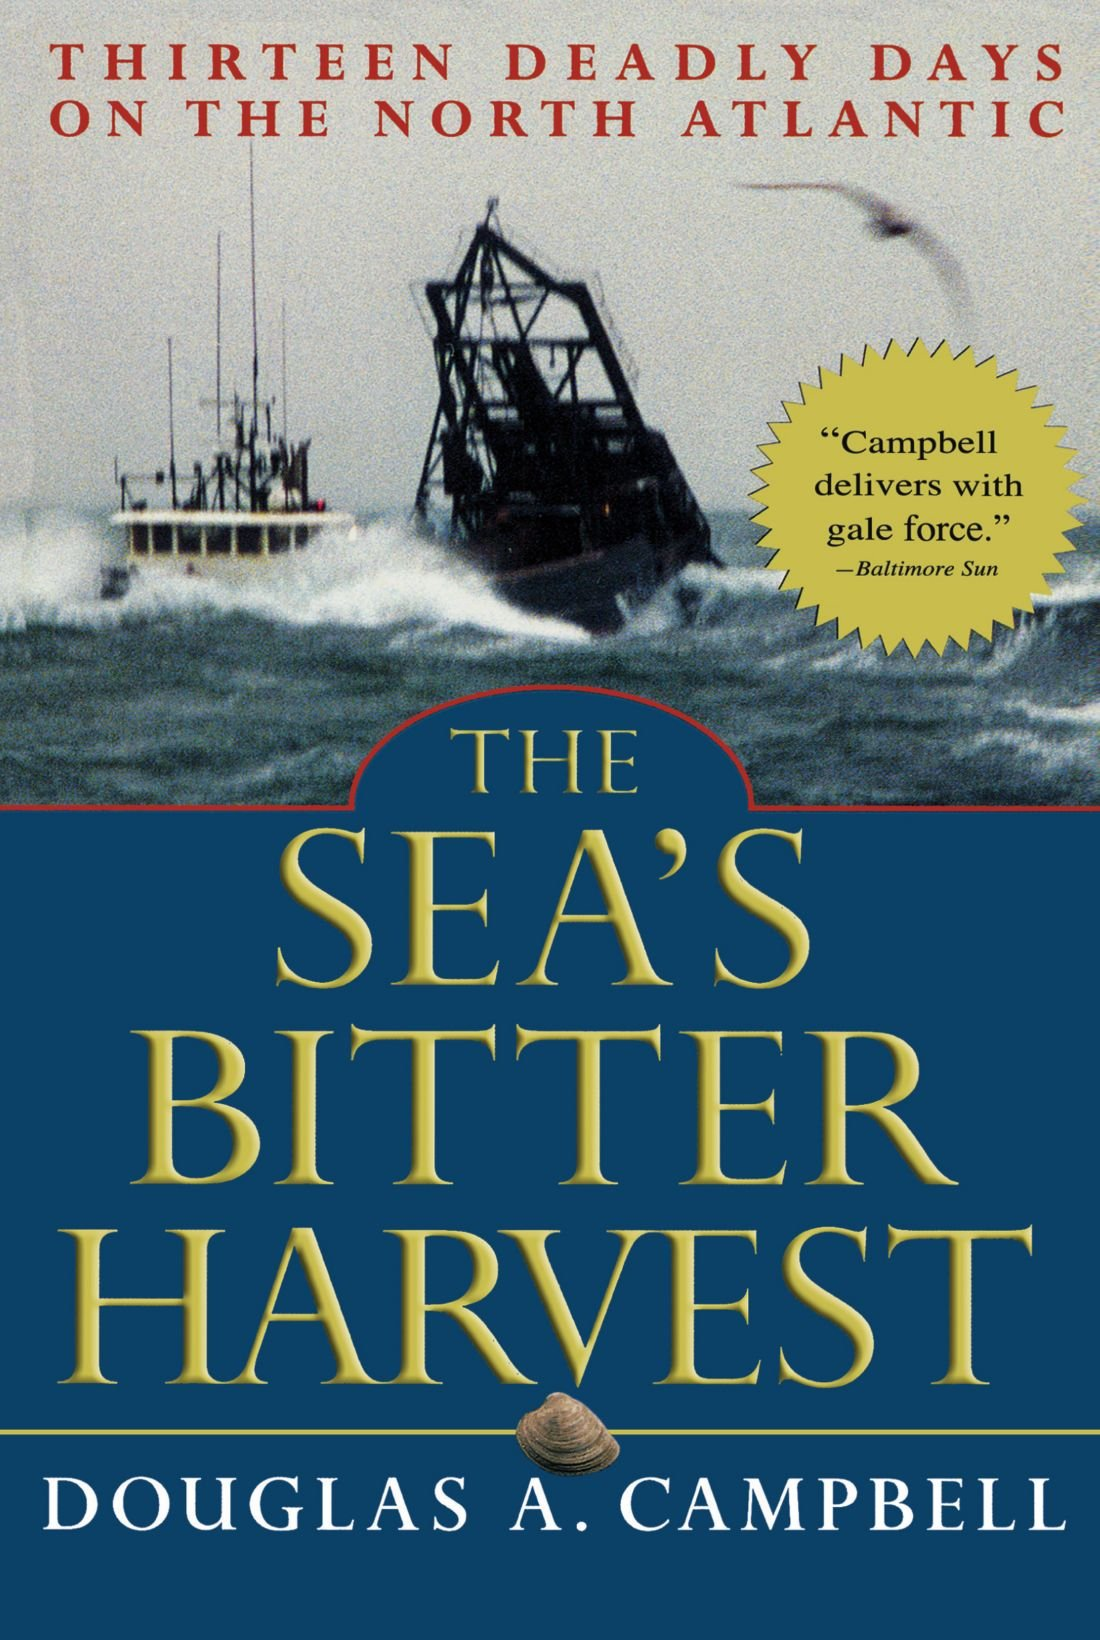 The Sea's Bitter Harvest: Thirteen Deadly Days on the North Atlantic pdf